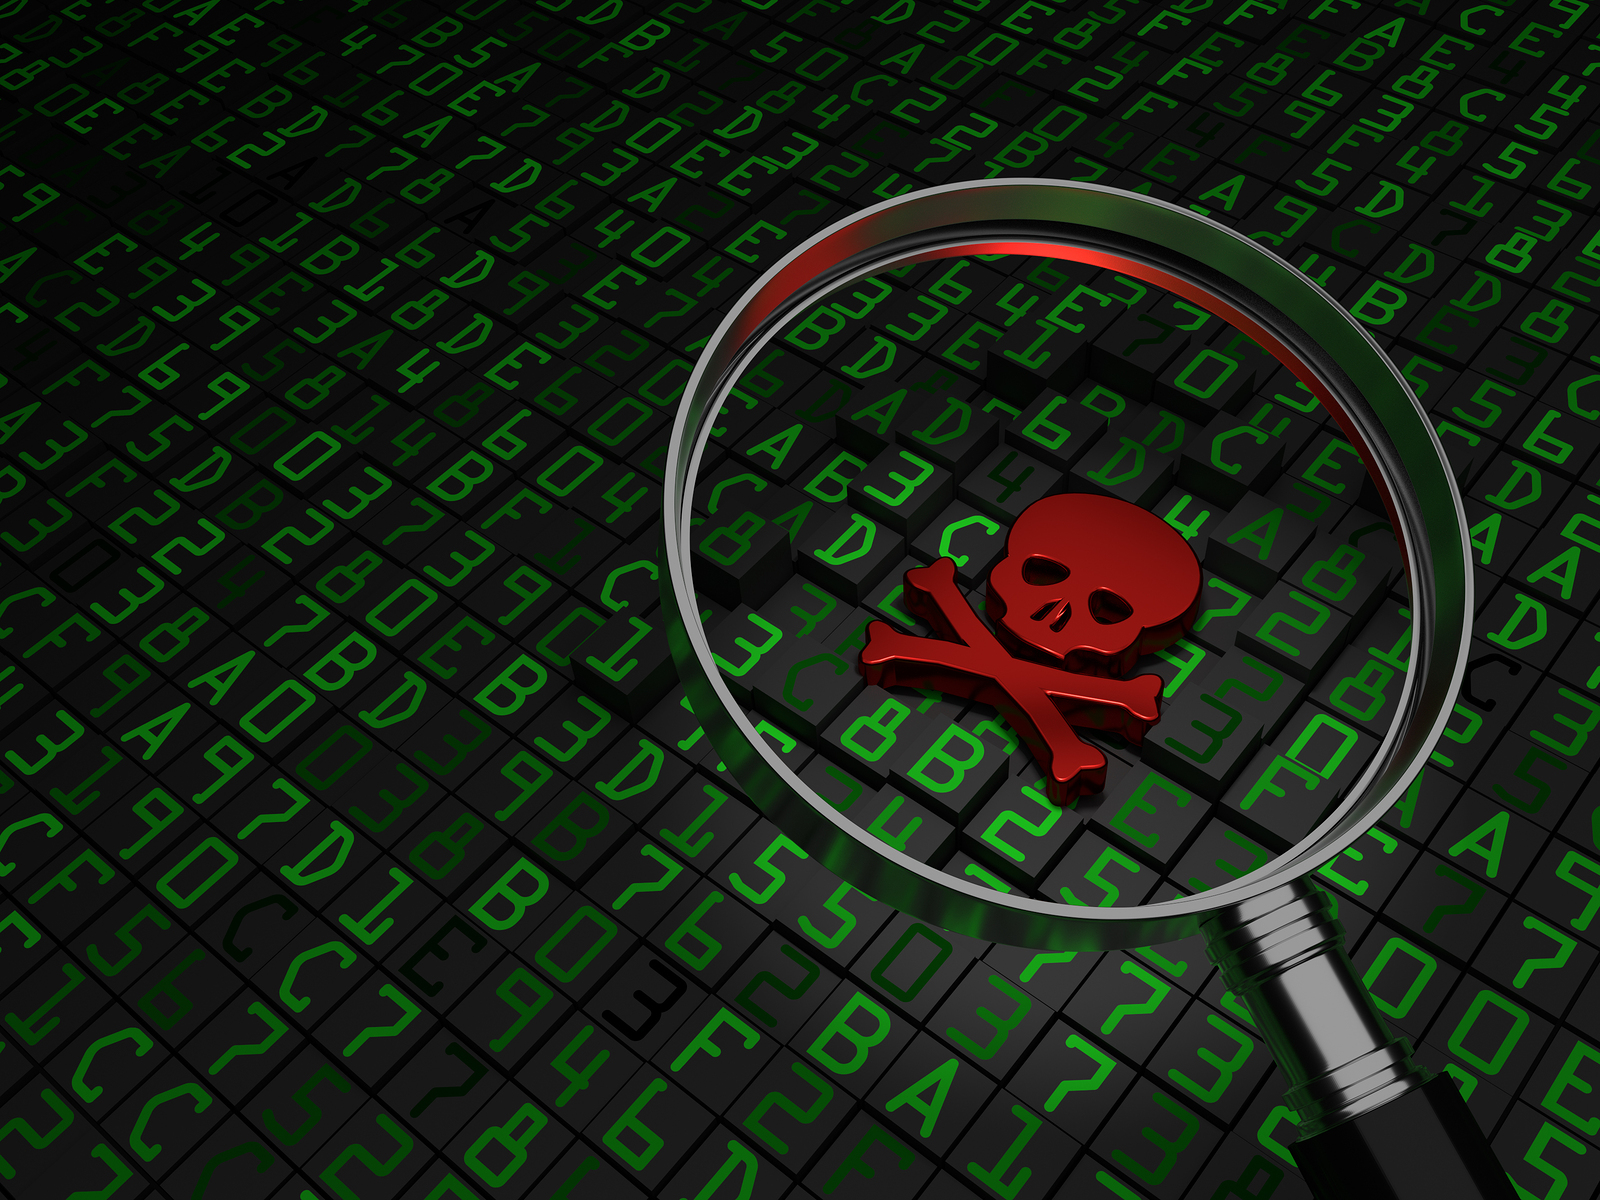 Understanding the Strengths and Limitations of Your Intrusion Detection System